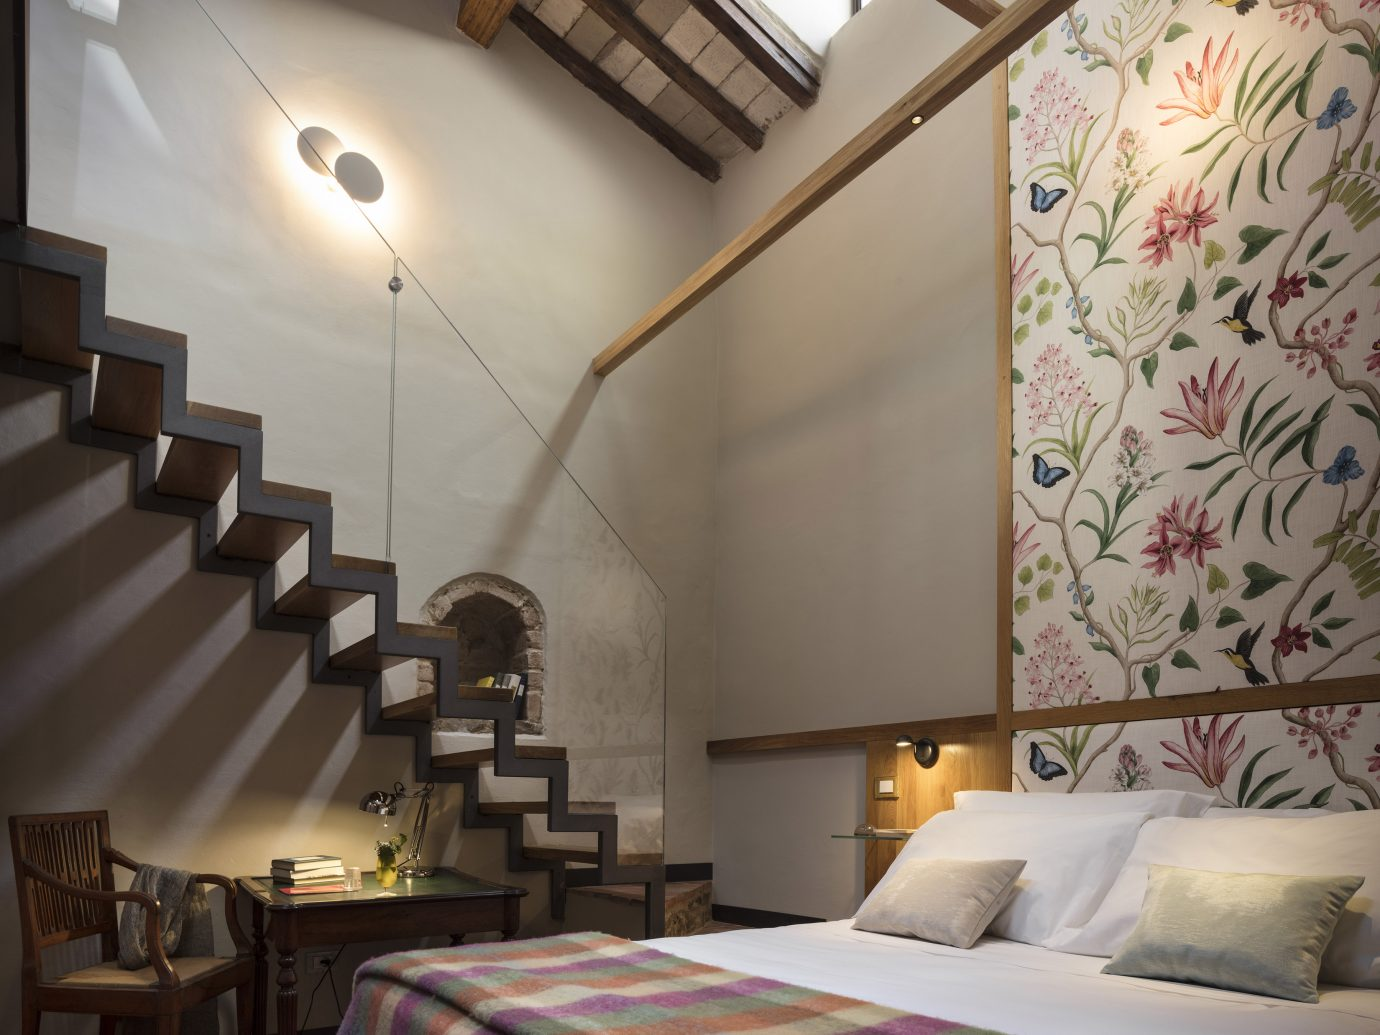 Interior room space at Ottantotto with bed and rail-less stairs leading up